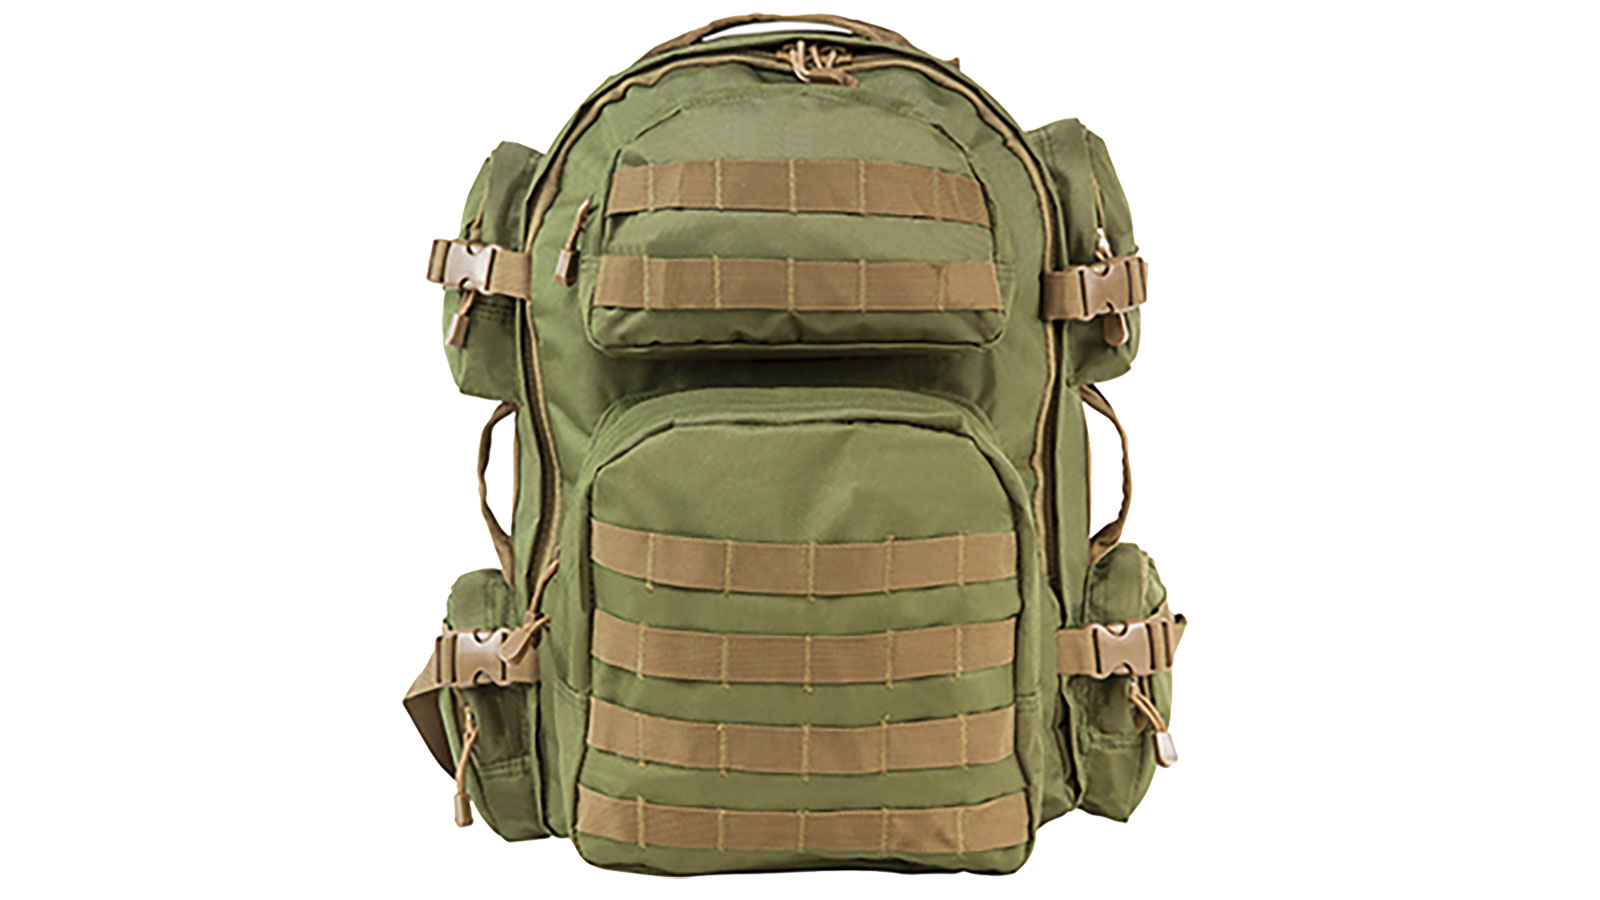 NC Star Tactical Backpack Green with Tan Trim